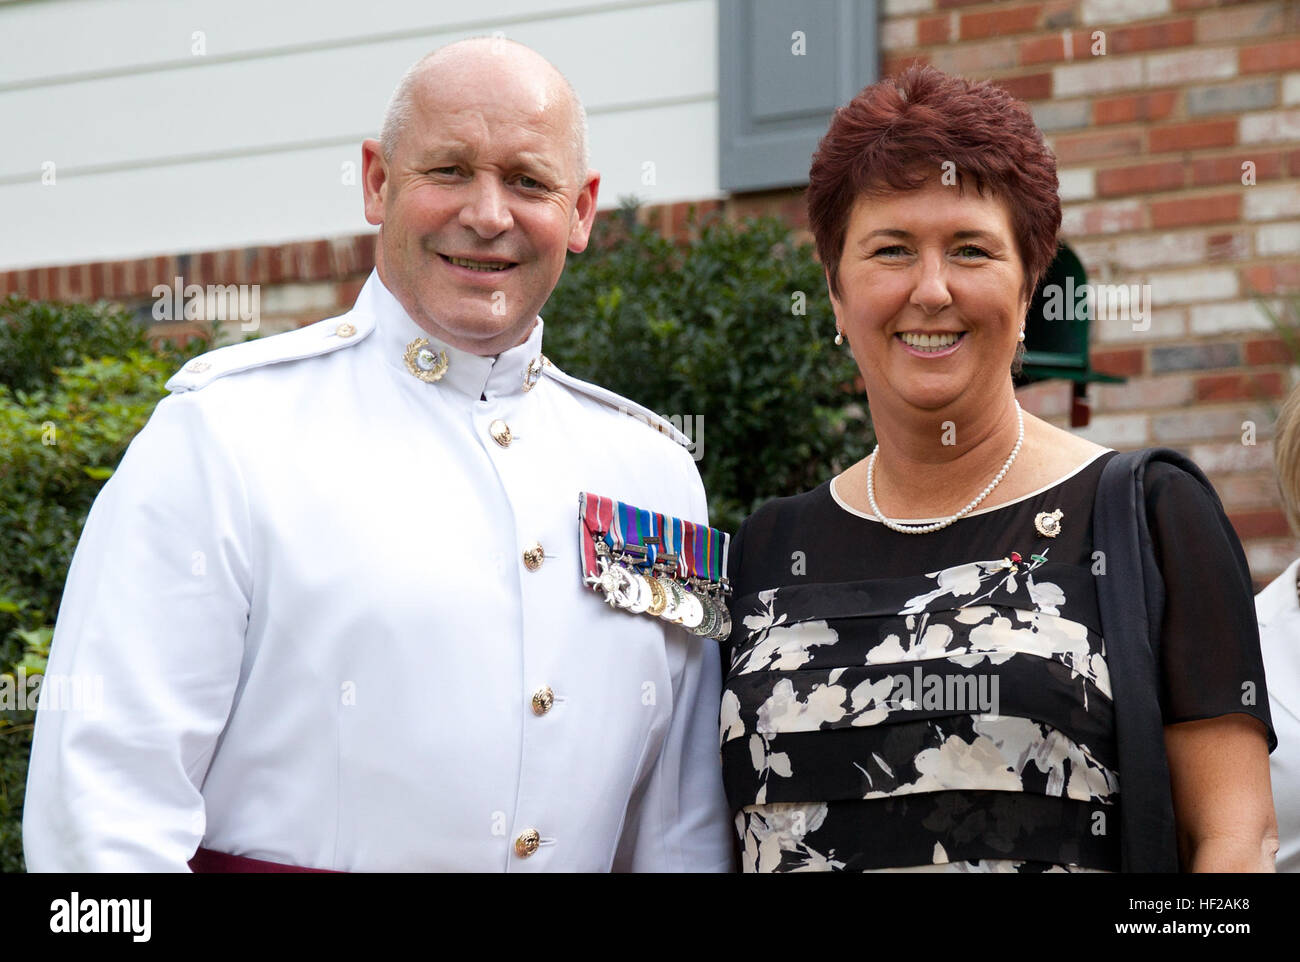 The Corps Regimental Sergeant Major of the British Royal Marines, Sgt. Maj. Allistar McGill, left, and his wife, Stock Photo